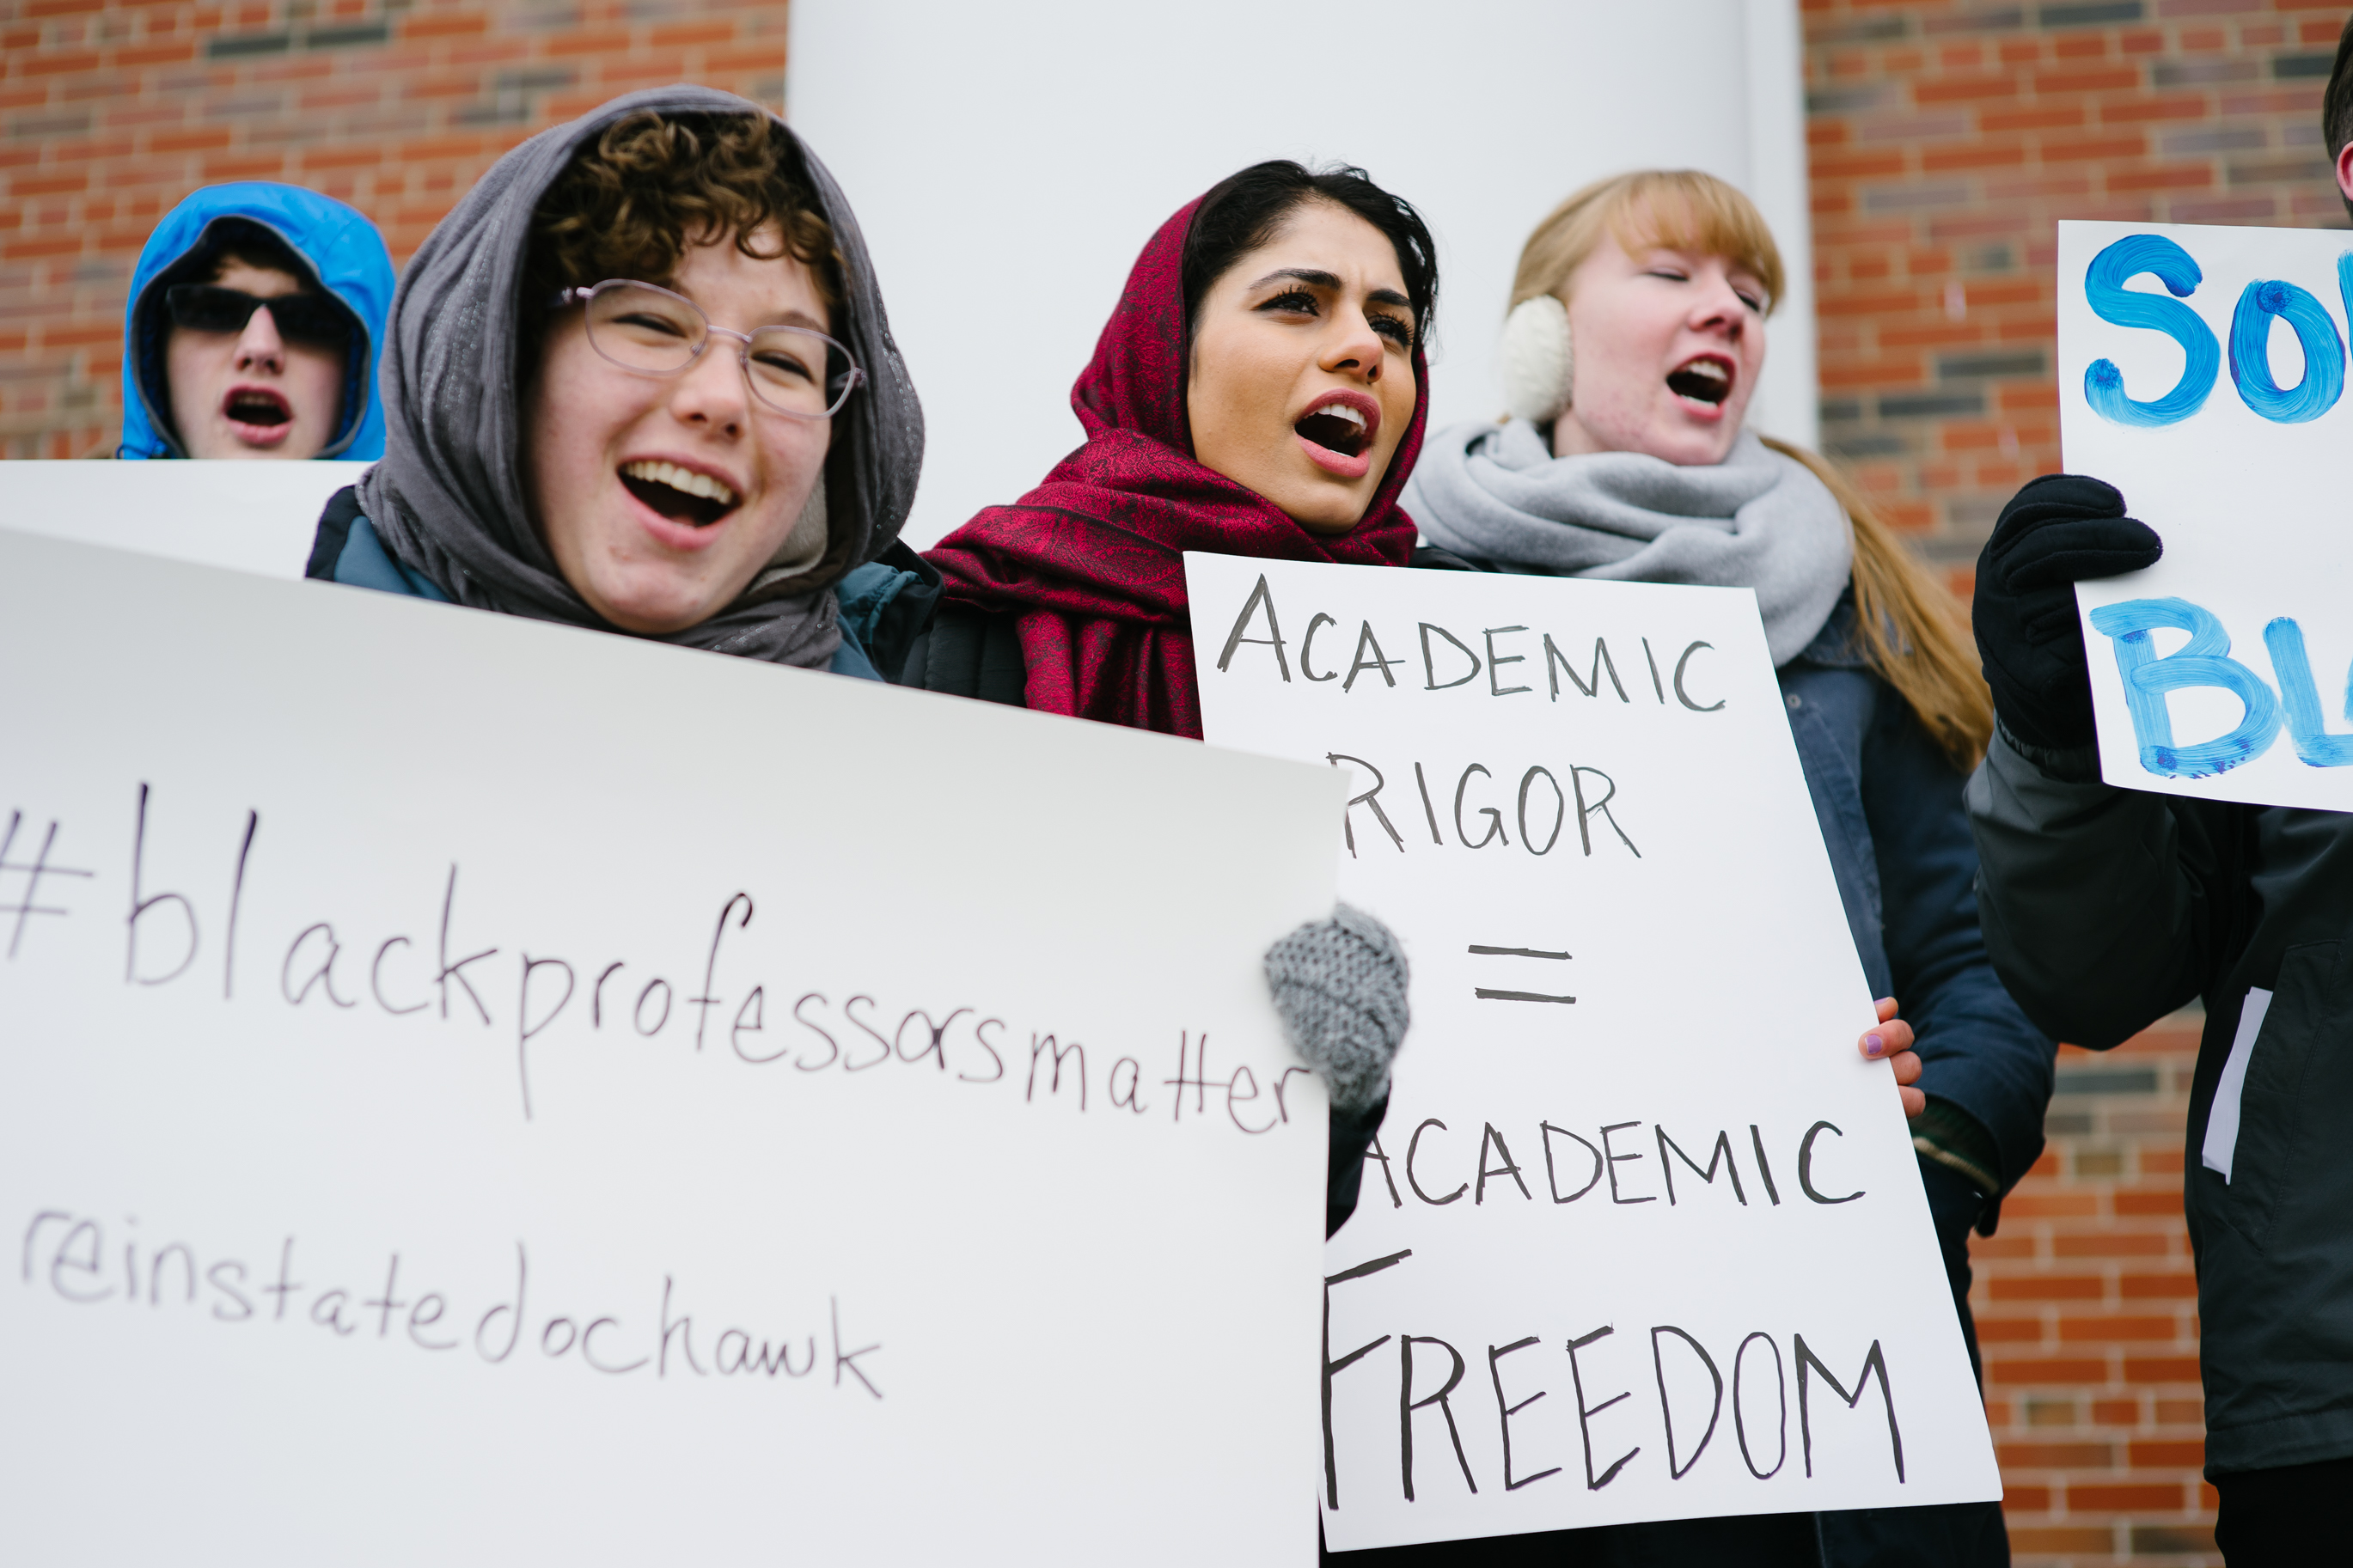 Maryam Bighash (C) participates in a show of support for Wheaton professor Larcyia Hawkins in front of Edman Chapel in Wheaton, Ill. on Jan. 11, 2016.